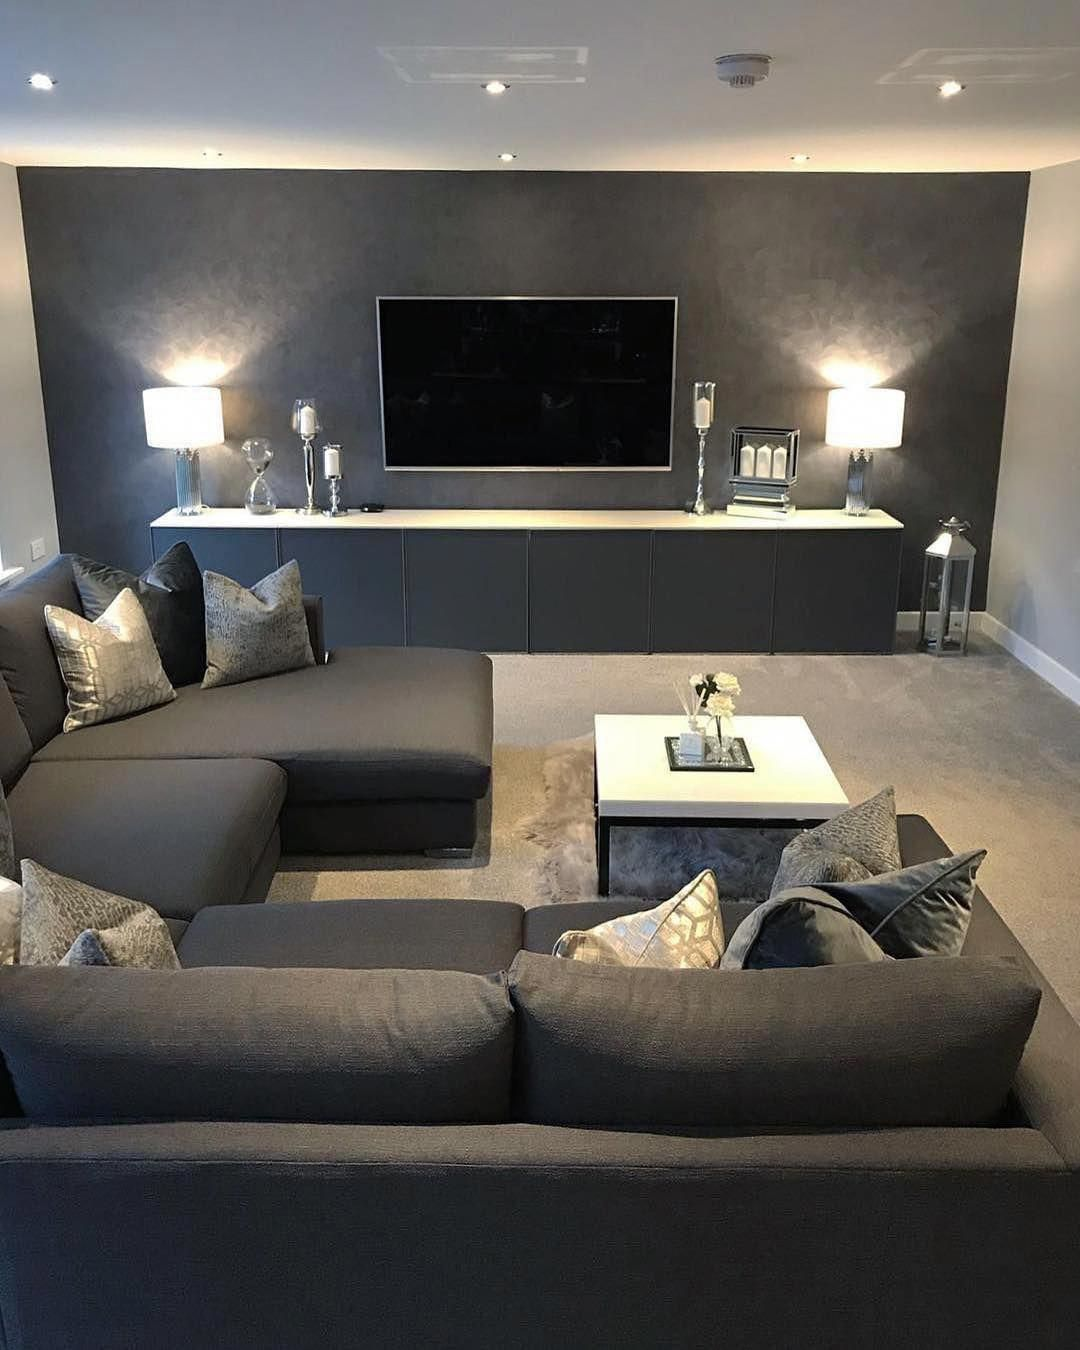 New The 10 Best Interior Designs In The World Interior Design Apartment Styles Ideas Bohem Trendy Living Rooms Neutral Living Room Farm House Living Room